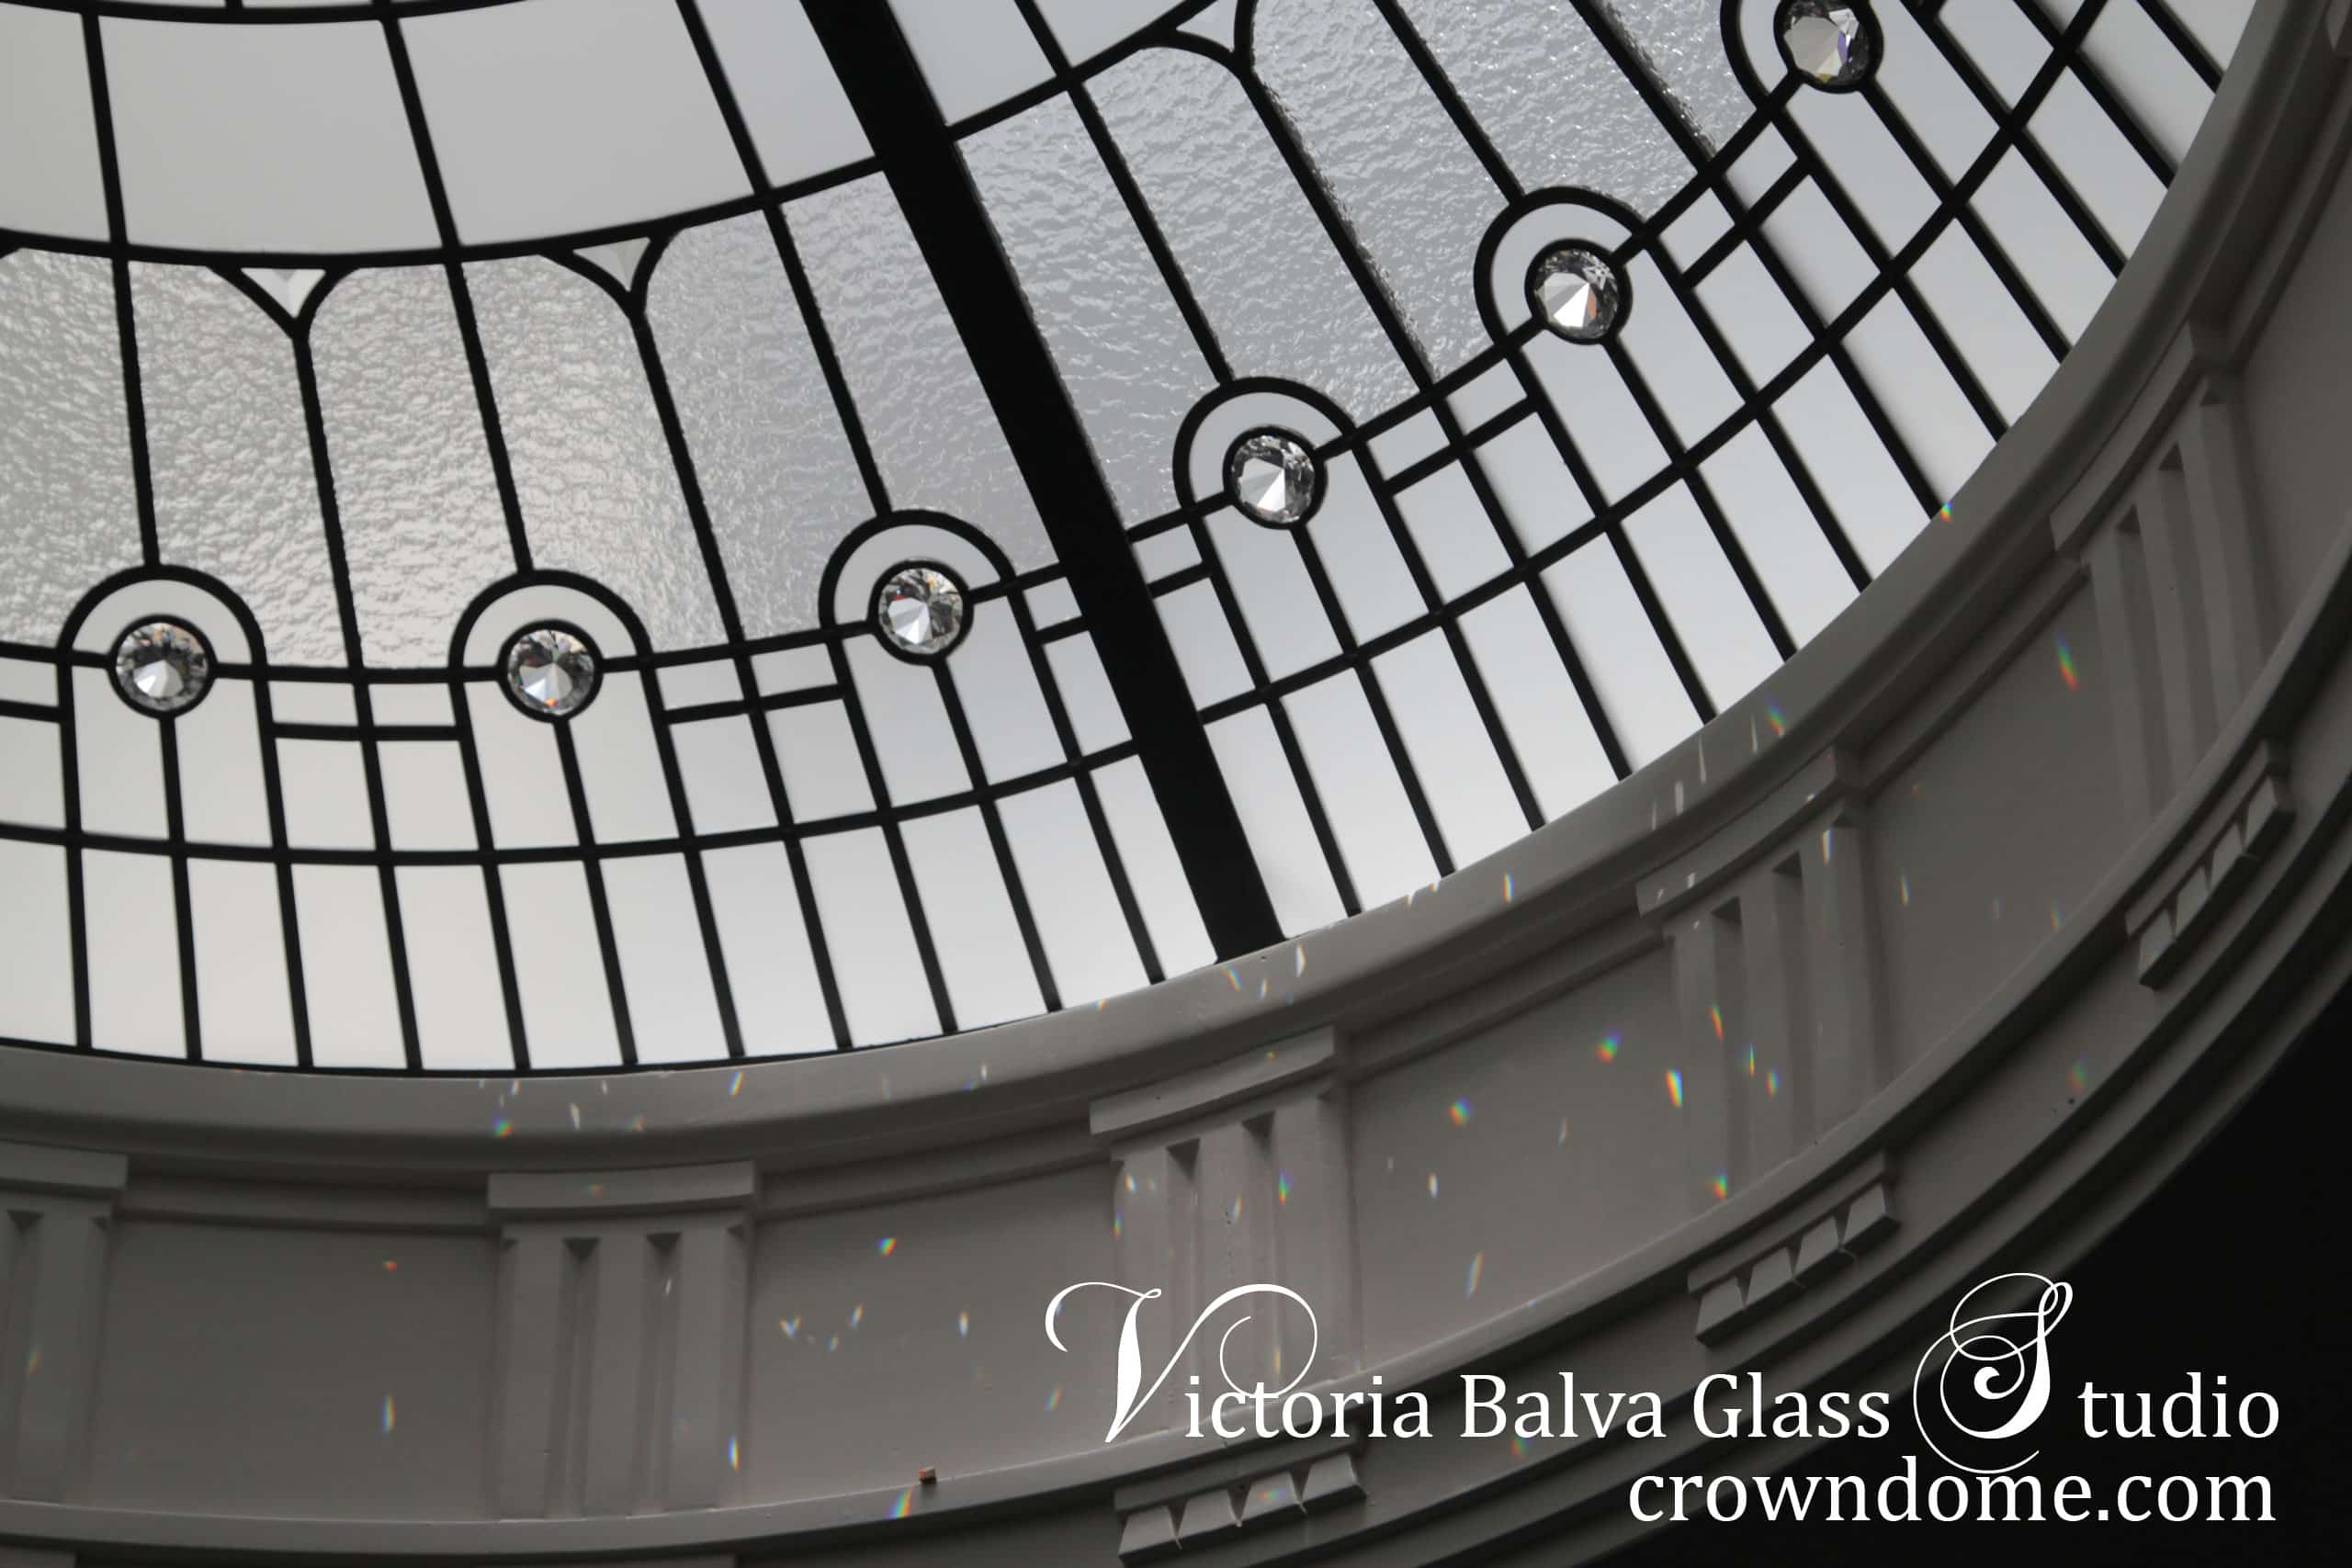 Simple elegant leaded glass oval dome detail for a spiral stairway of custom built house with crystal chandelier. Clear textured glass, clear crystal jewels, beveled glass. Original leaded glass oval dome design by glass artist Victoria Balva